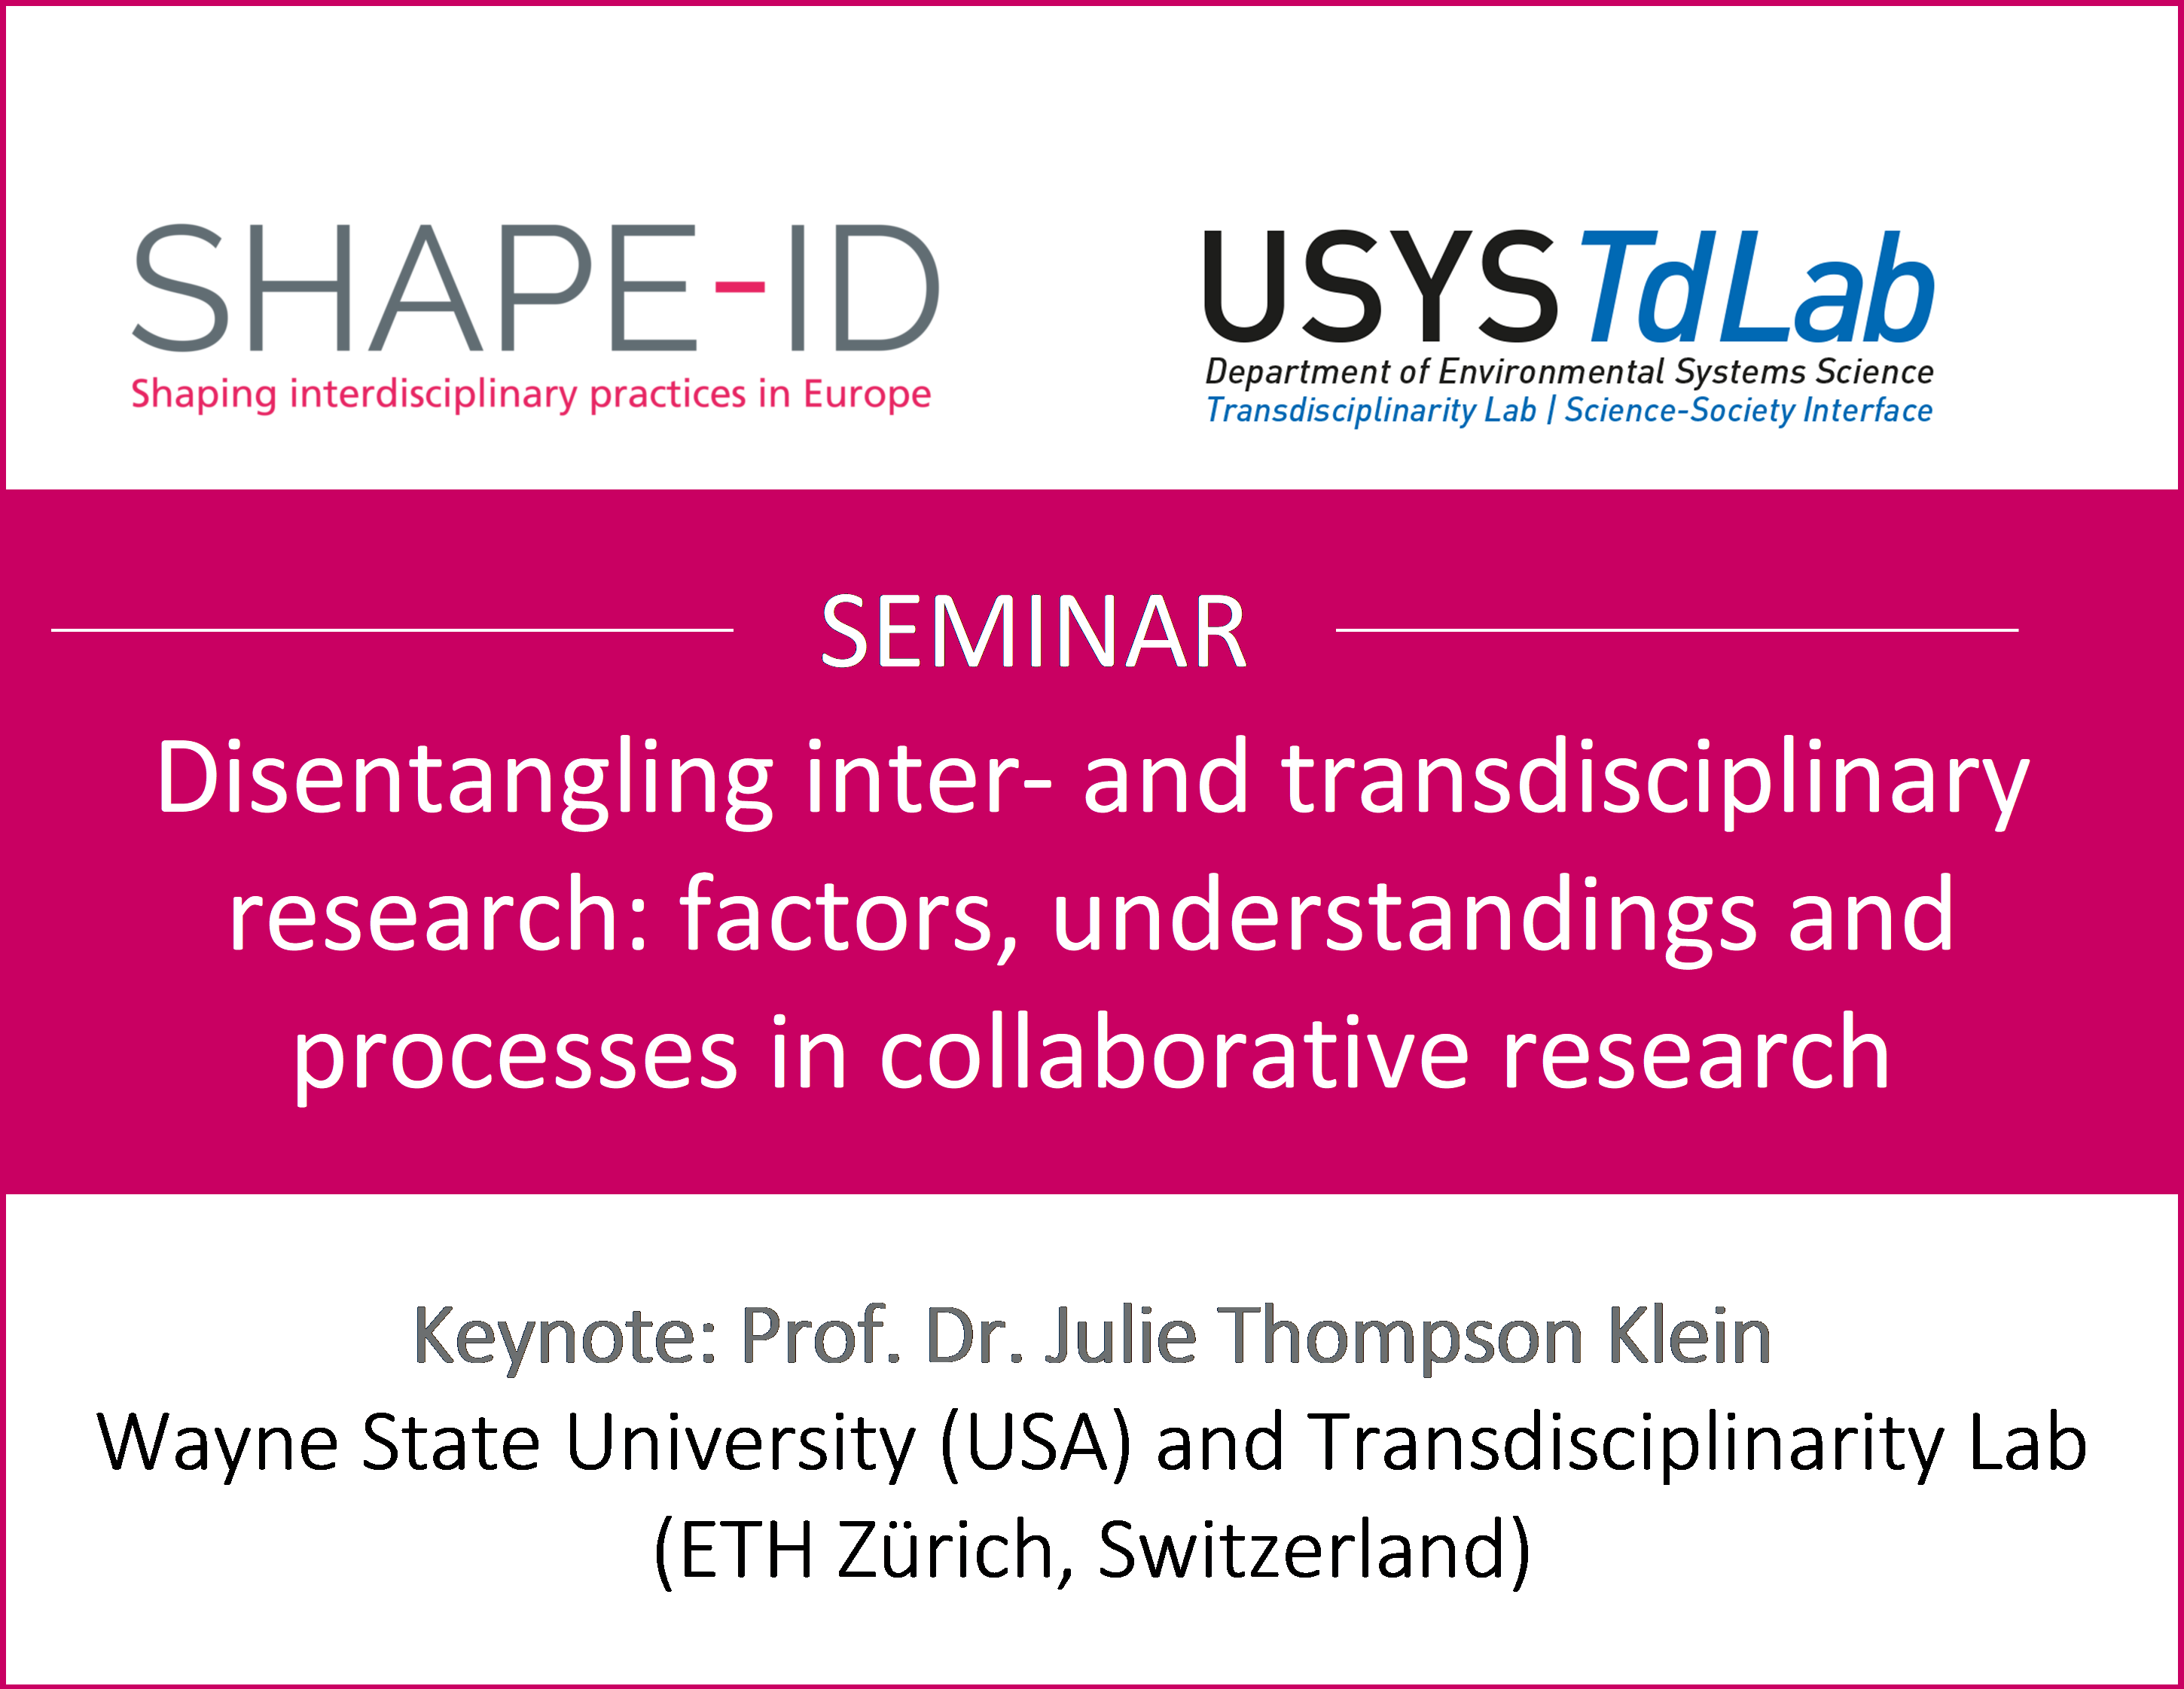 "Upcoming SHAPE-ID Seminar With Julie Thompson Klein At ETH Zurich: ""Disentangling Inter- And Transdisciplinary Research"""